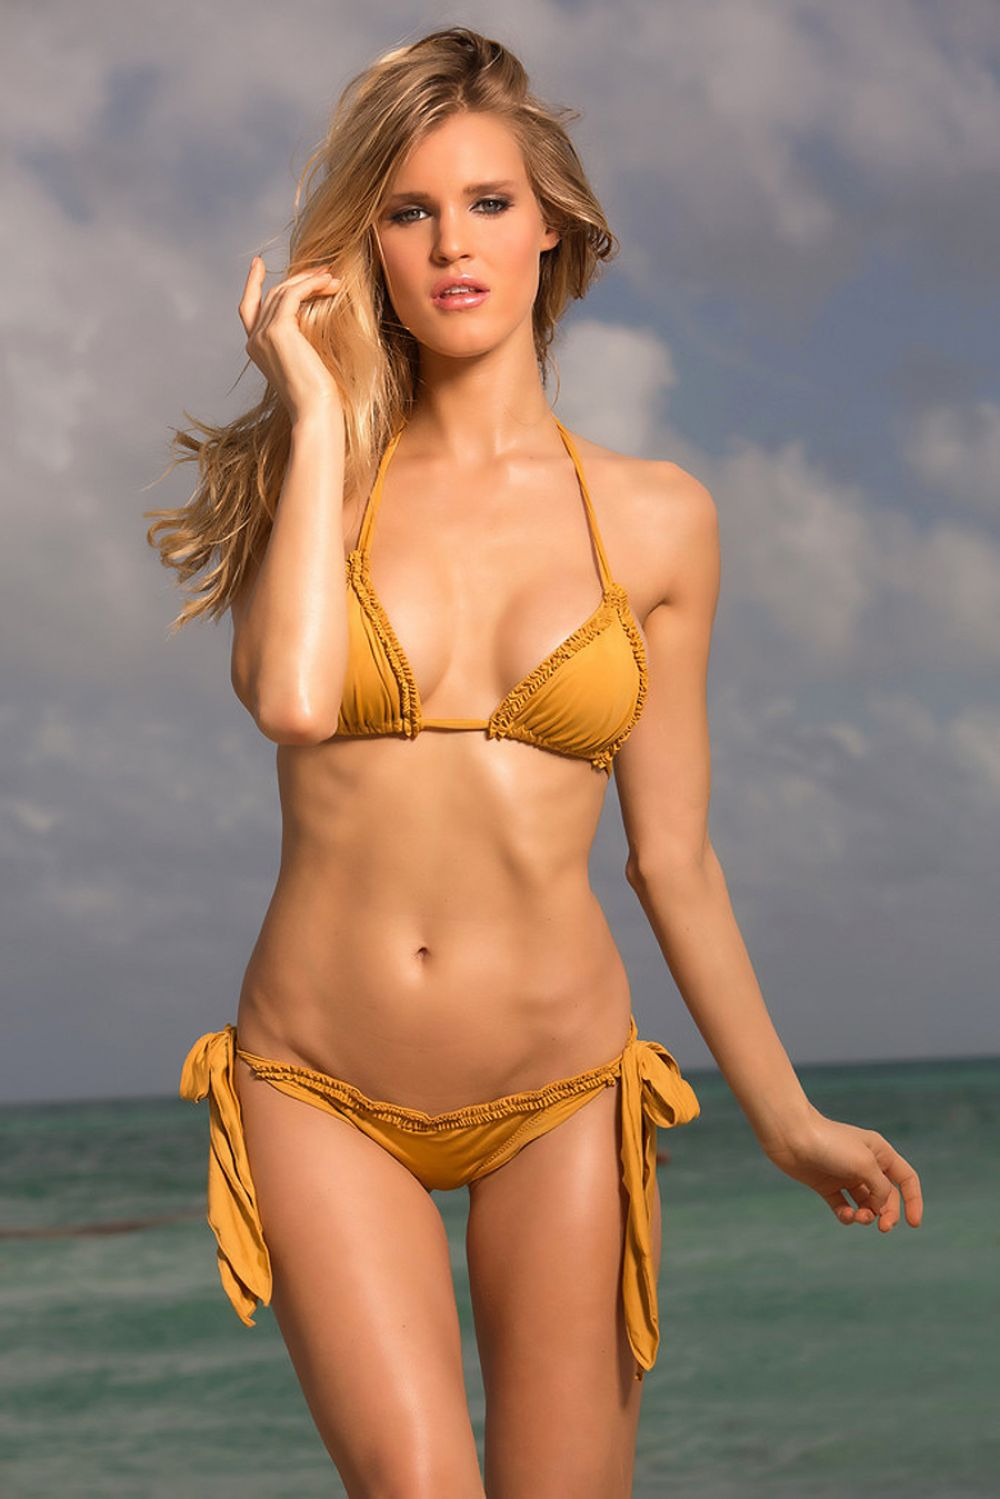 joy-corringan-summerlove-swimwear-2014-collection_19.jpg - 114.61 KB